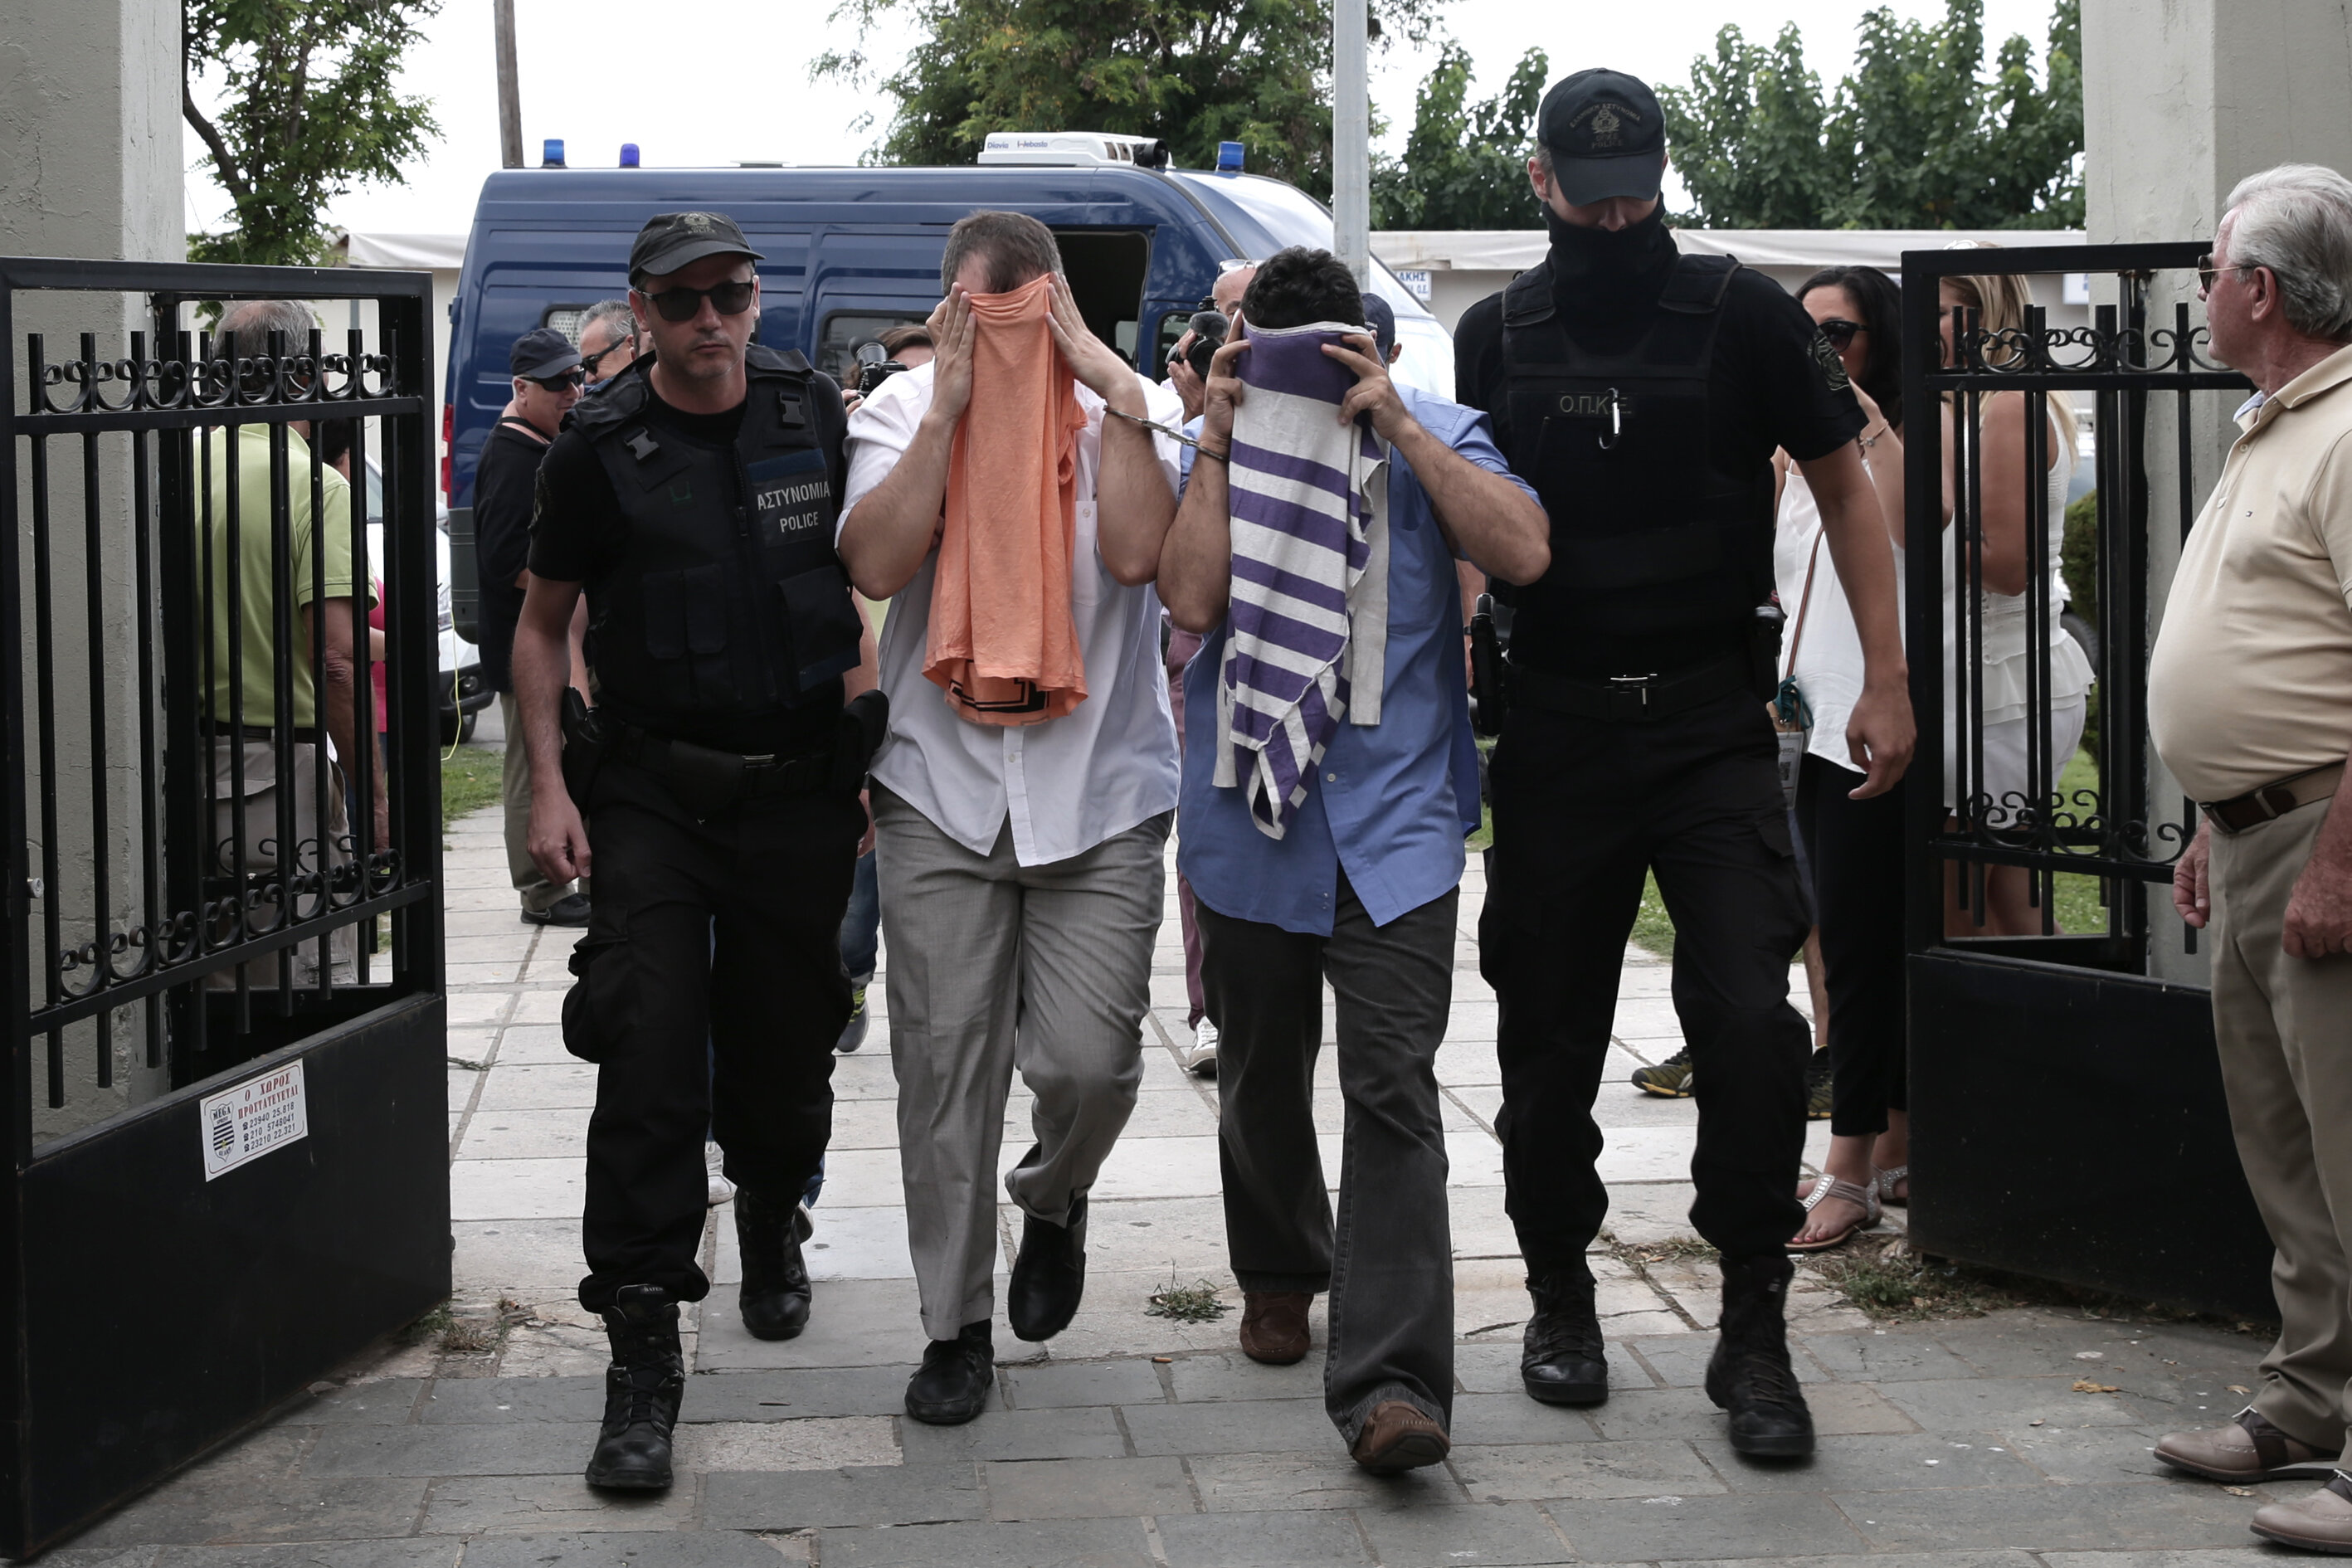 6The eight soldiers who escaped to Greece in a Sikorsky helicopter after FETÖ's coup attempt applied for asylum in Greece.